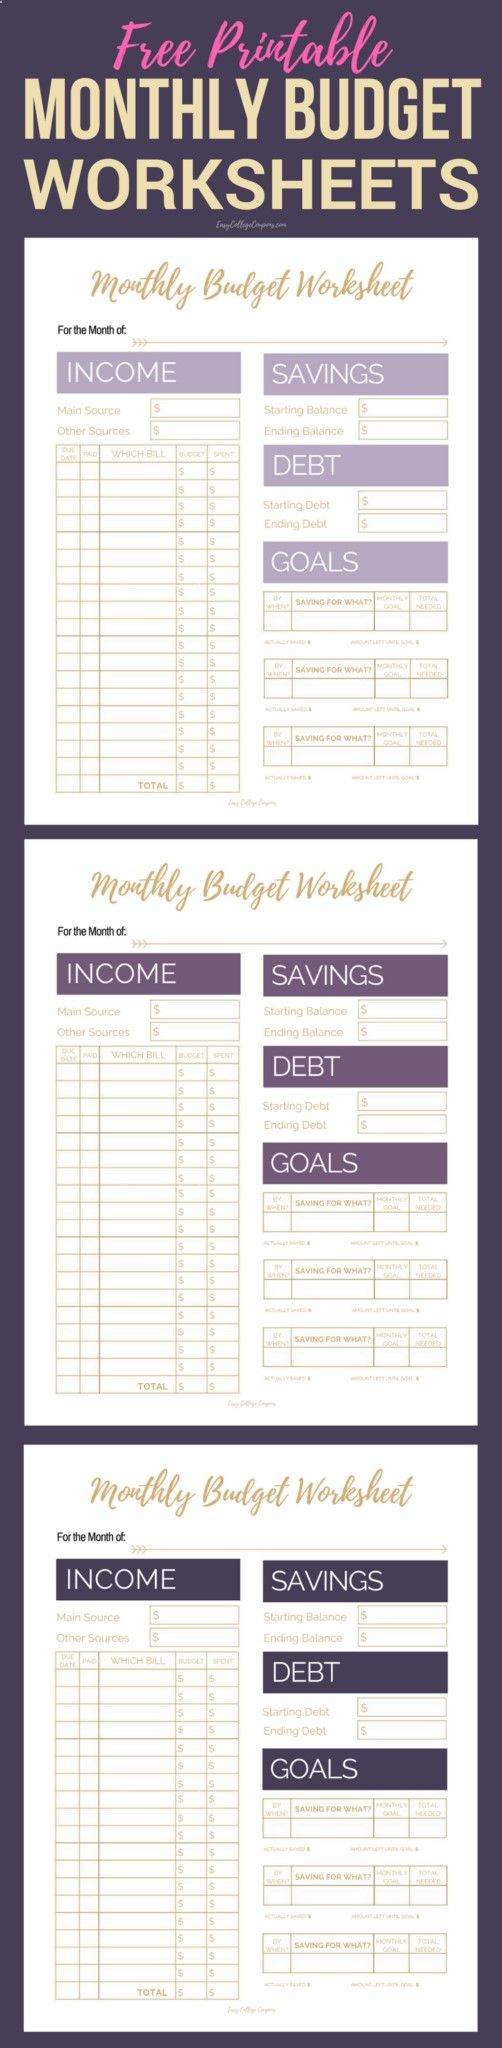 Earn Money From Home Free Printable Budget Worksheet, Sheets, Planner   Simple College Budgeting   Finance, Saving Money #budeting #budgetlife #frugalliving #freeprintables #printables You may have signed up to take paid surveys in the past and didn't make any money because you didn't know the correct way to get started!